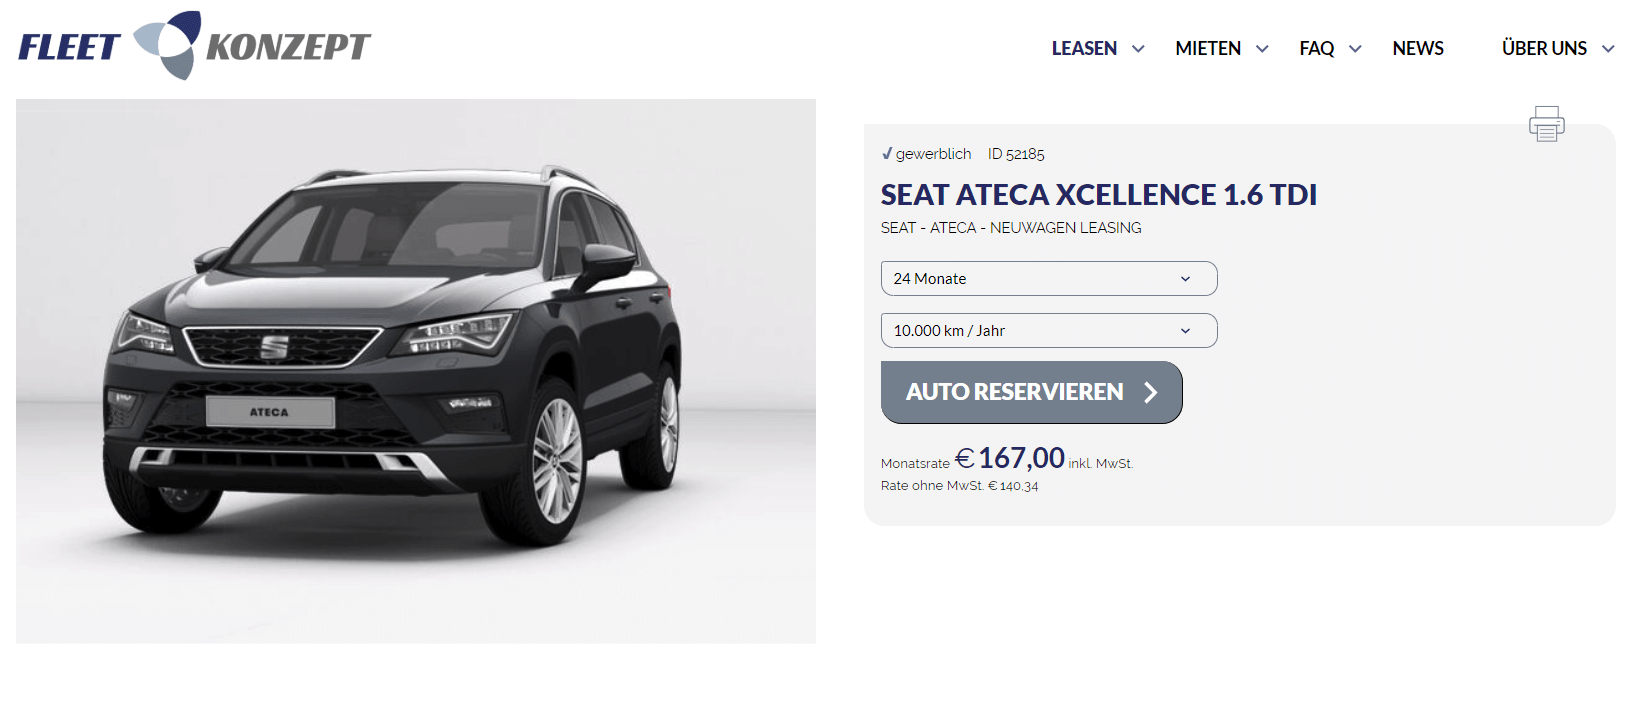 seat ateca xcellence leasing f r 140 34 euro netto im. Black Bedroom Furniture Sets. Home Design Ideas